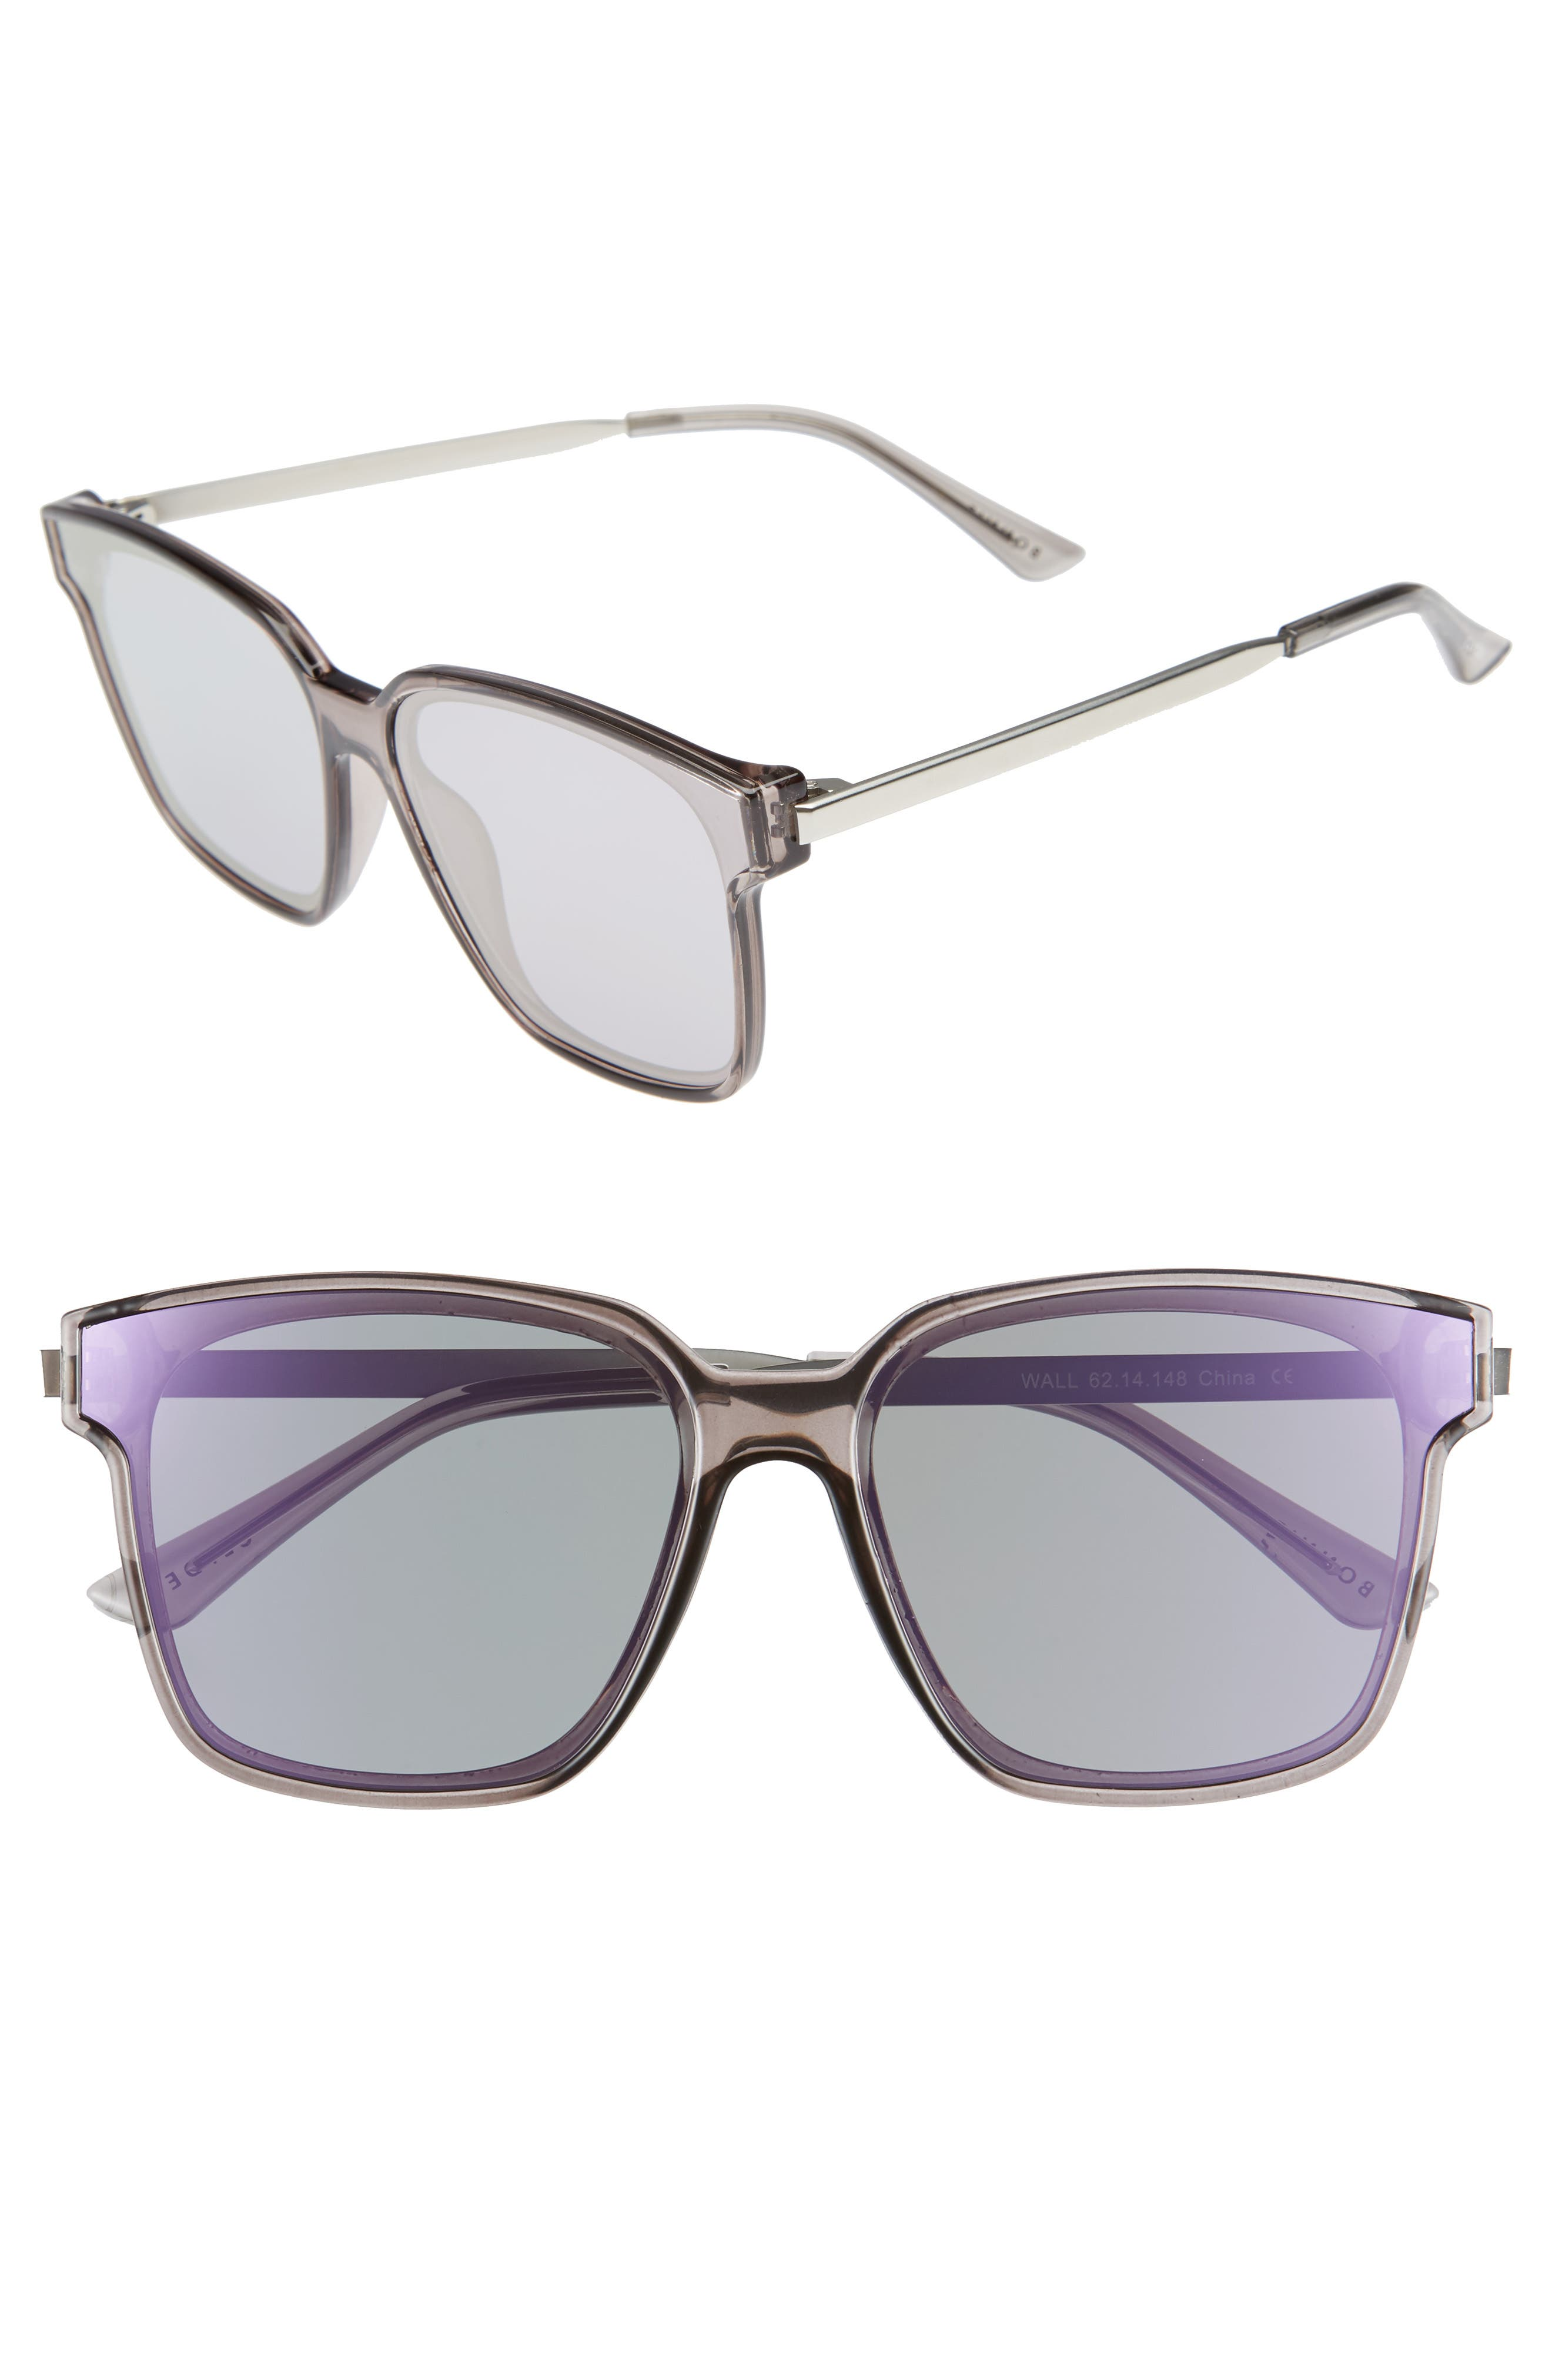 Alternate Image 1 Selected - Bonnie Clyde Wall 62mm Square Mirror Lens Sunglasses